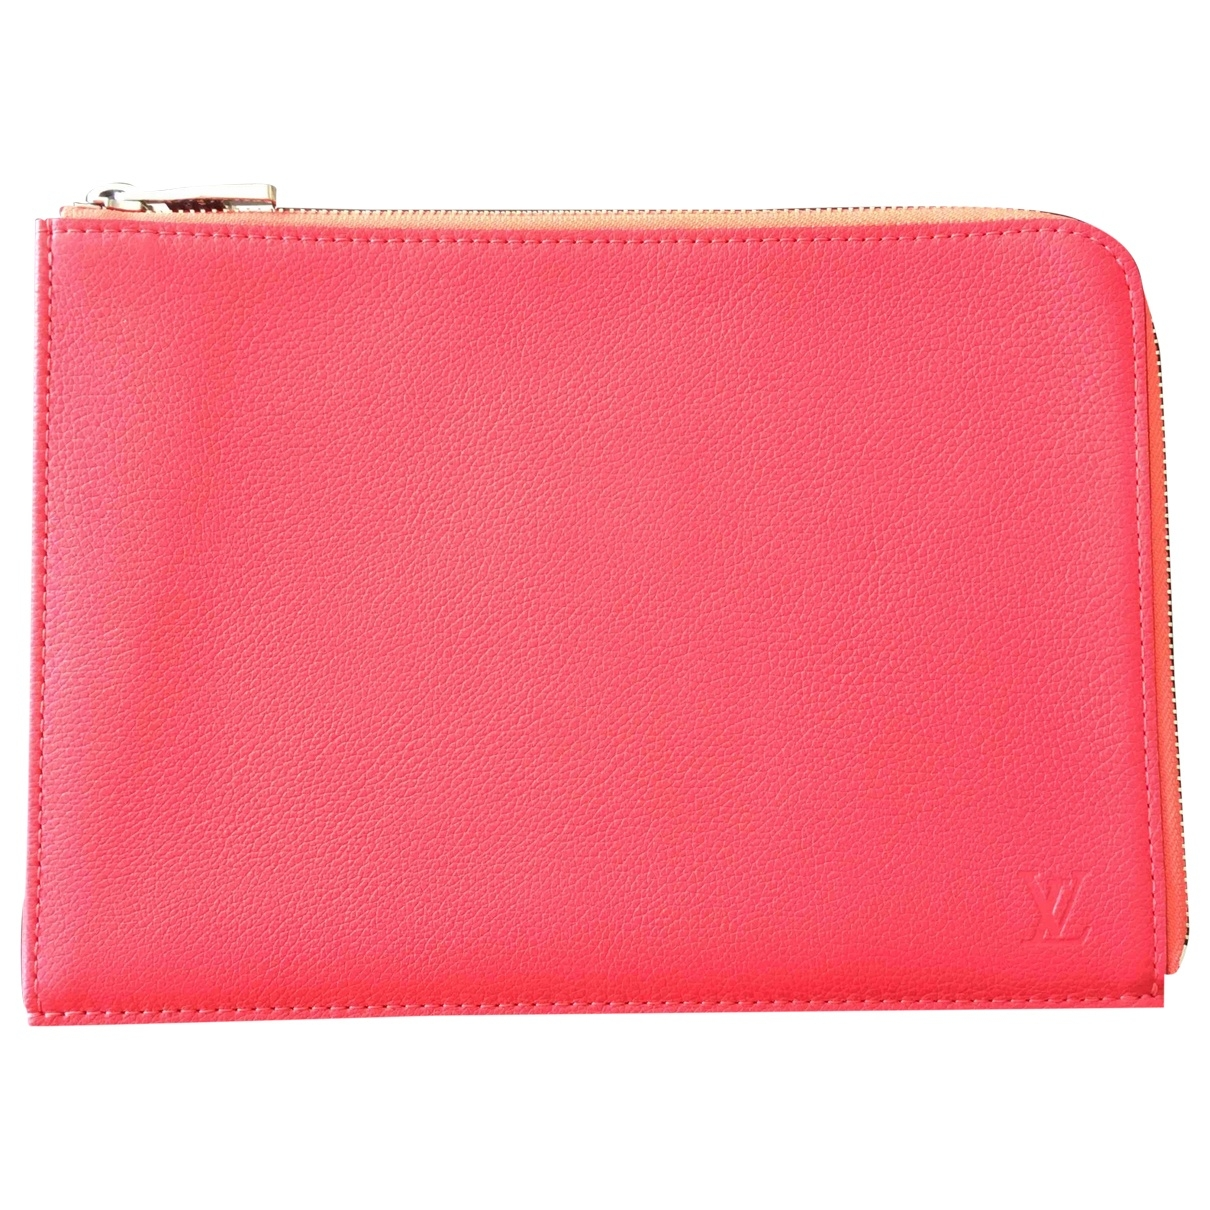 Louis Vuitton \N Pink Leather Clutch bag for Women \N